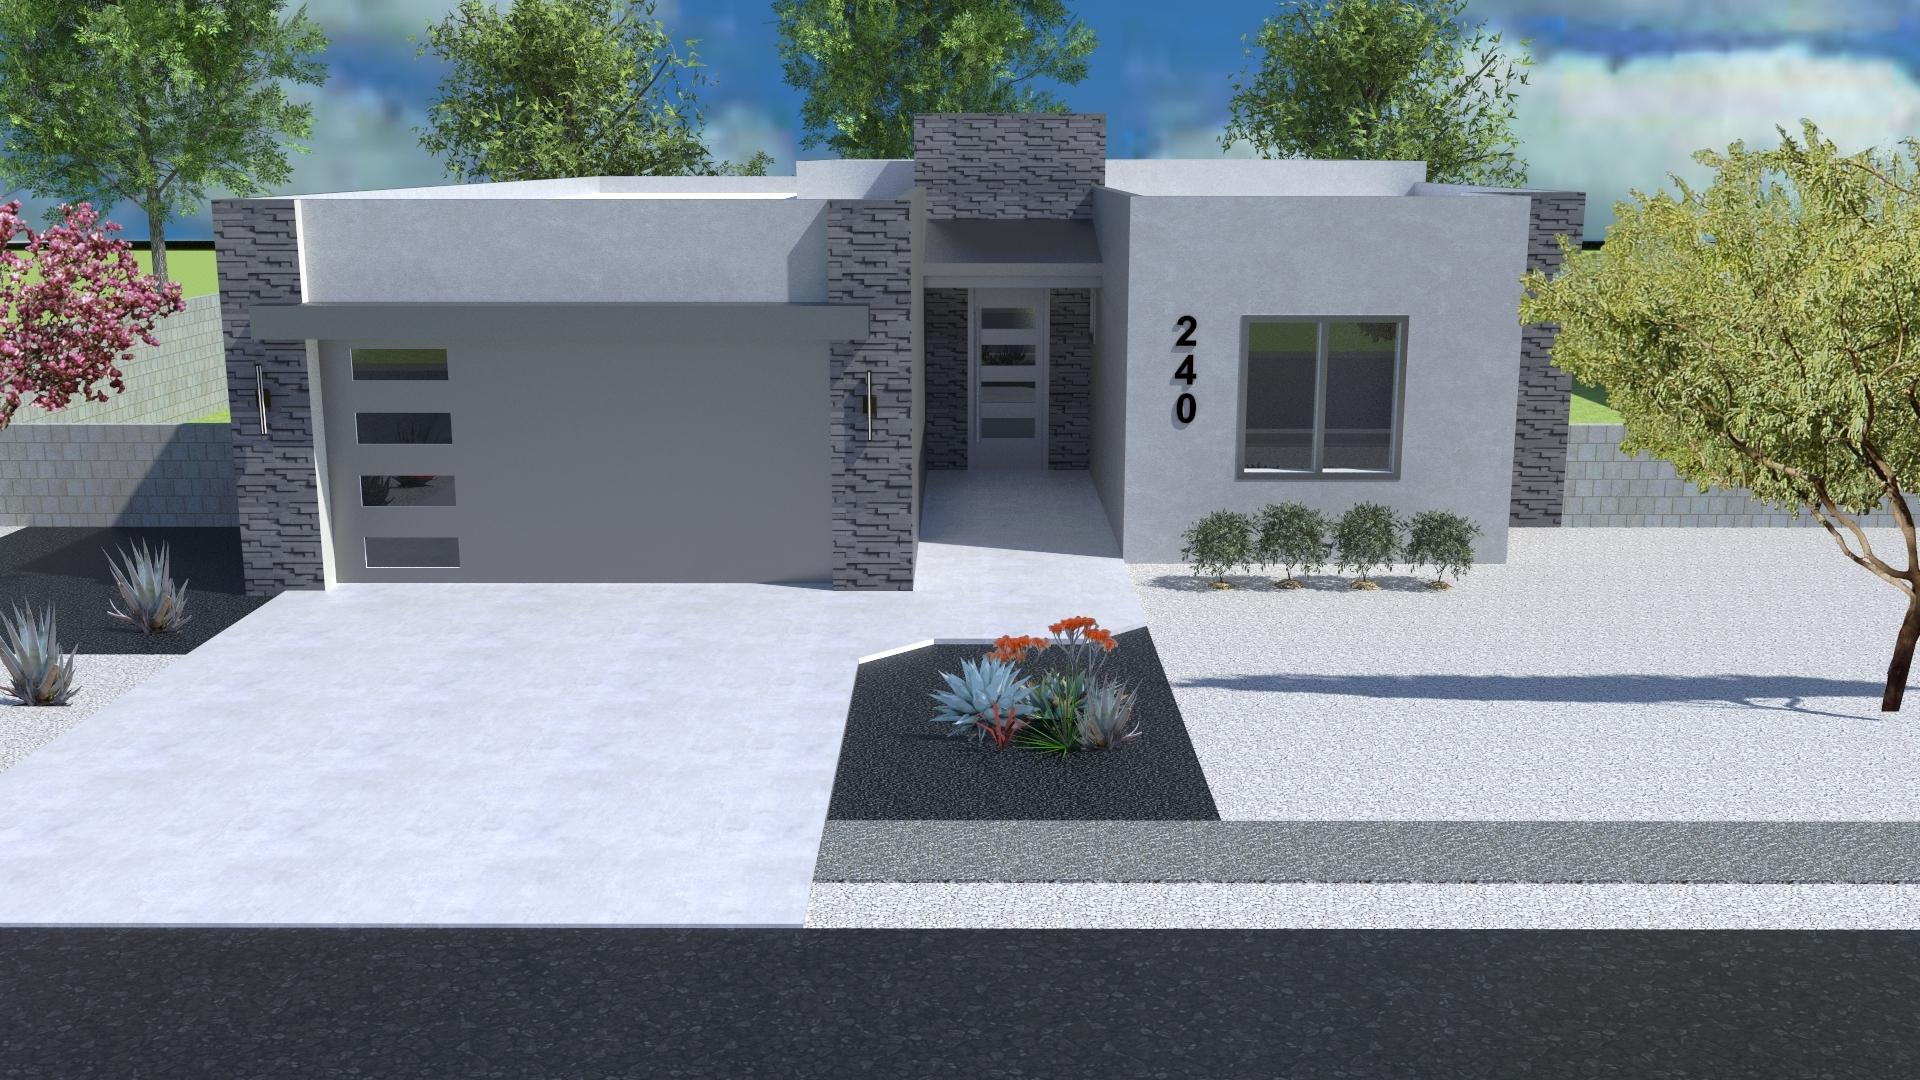 Beautiful new contemporary custom home planned for the brand new Valle Encantado gated community!  Three spacious bedrooms with 2 bathrooms and a 2 car garage.  10' ceilings in main living area and 9' through the rest of the home.  Living room is highlighted by a gorgeous fireplace with custom stone work.  Tile planned throughout the home.  Custom cabinets with quartz countertops also planned.  Home has not been built yet!   New owner can still select finishes! Images are drawings meant to represent the final product but actual final product may be slightly different than portrayed here.11 lots are available in the custom-home gated community!  Bring your own builder or use ours!